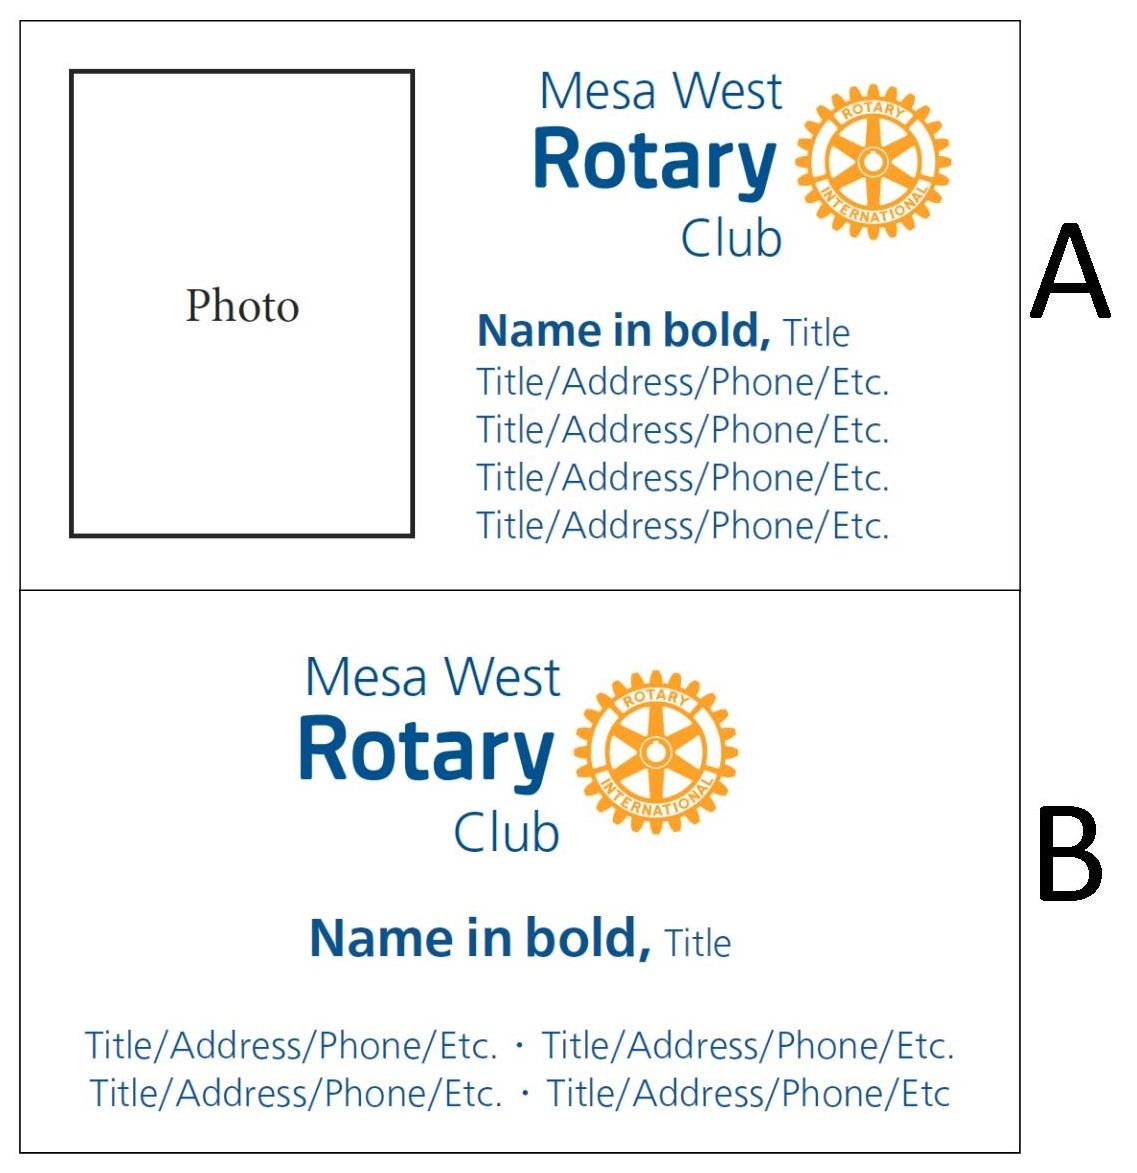 Dan S Has Generously Offered To Print Business Cards For Mesa West Rotary Club Members At The Nominal Cost Of 12 00 Per Box 500